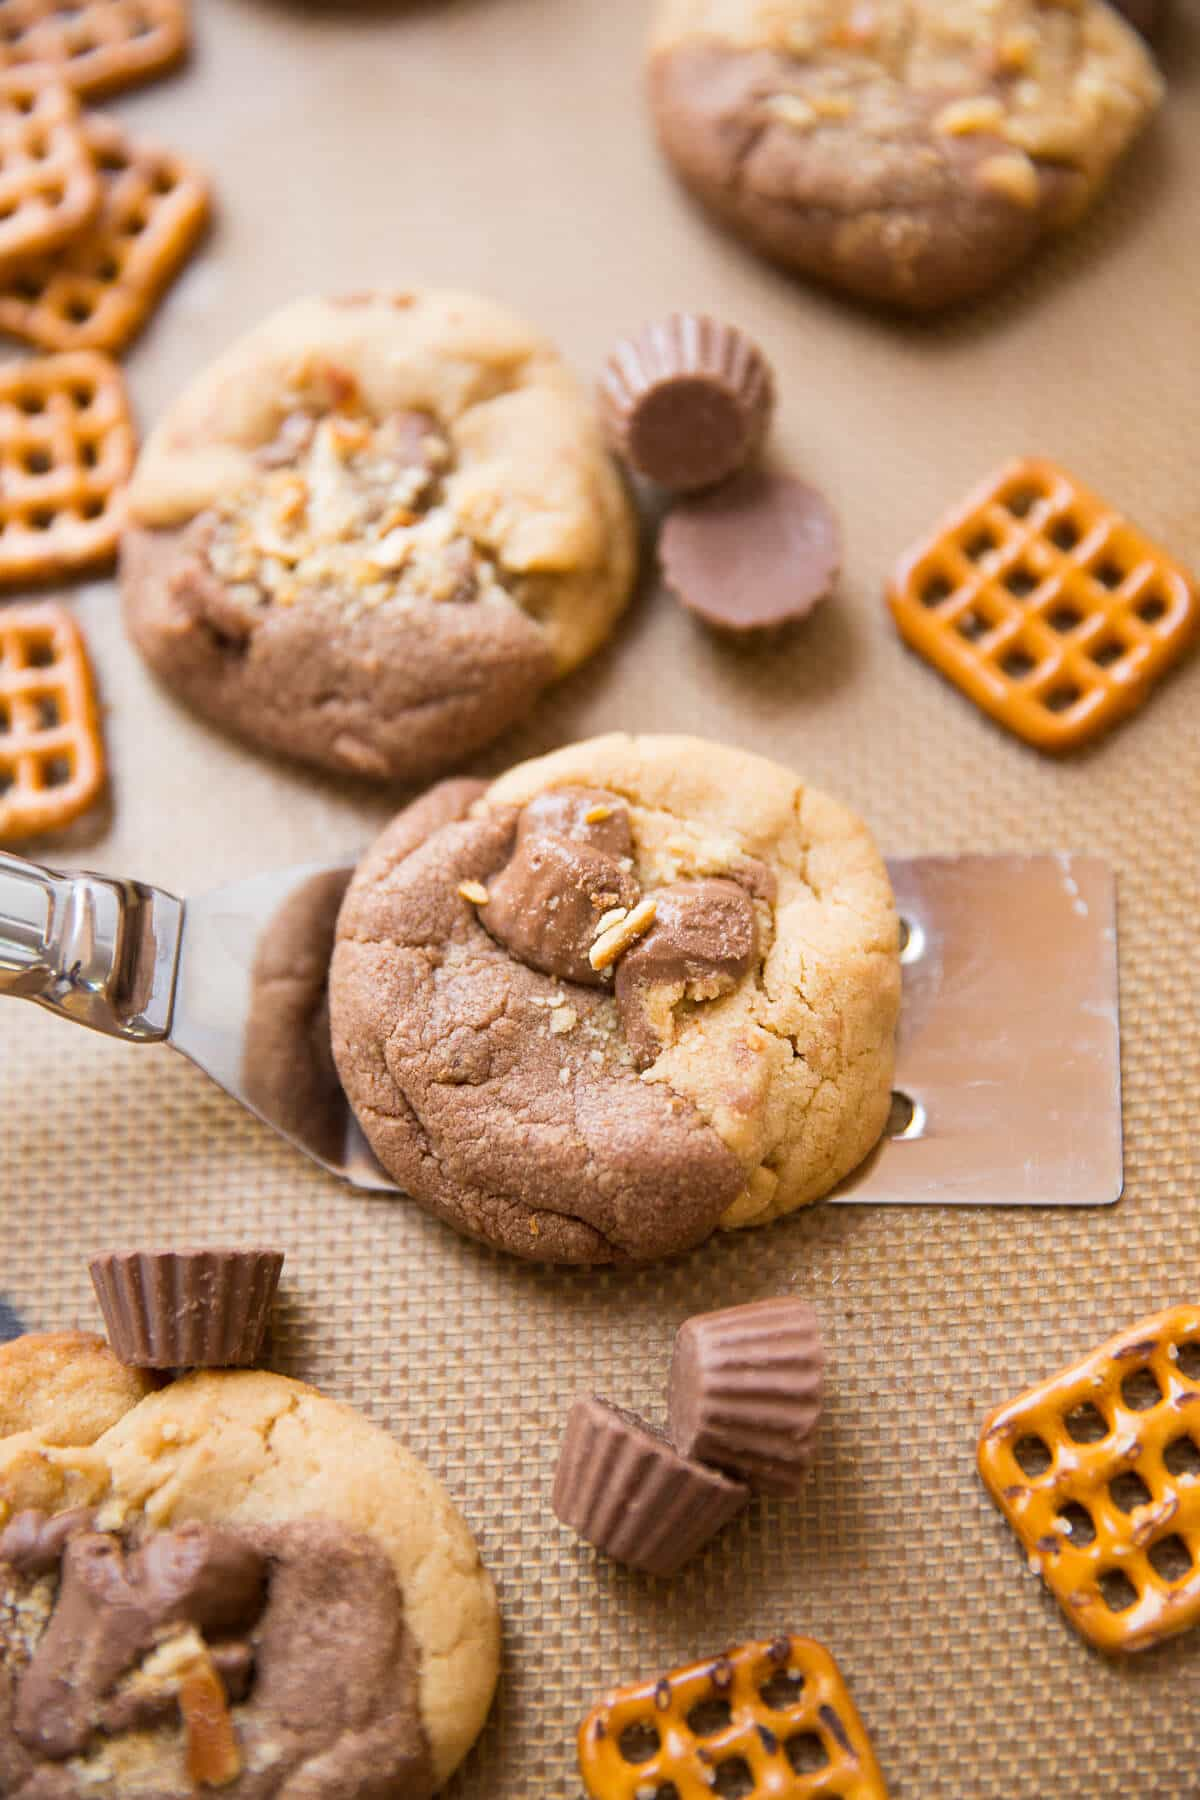 Chocolate and peanut butter are swirled together in these Chocolate Peanut Butter Explosion Cookies! Peanut butter cups, peanut butter chips all make an appearance as do pretzels which add a little saltiness to the sweet mix!